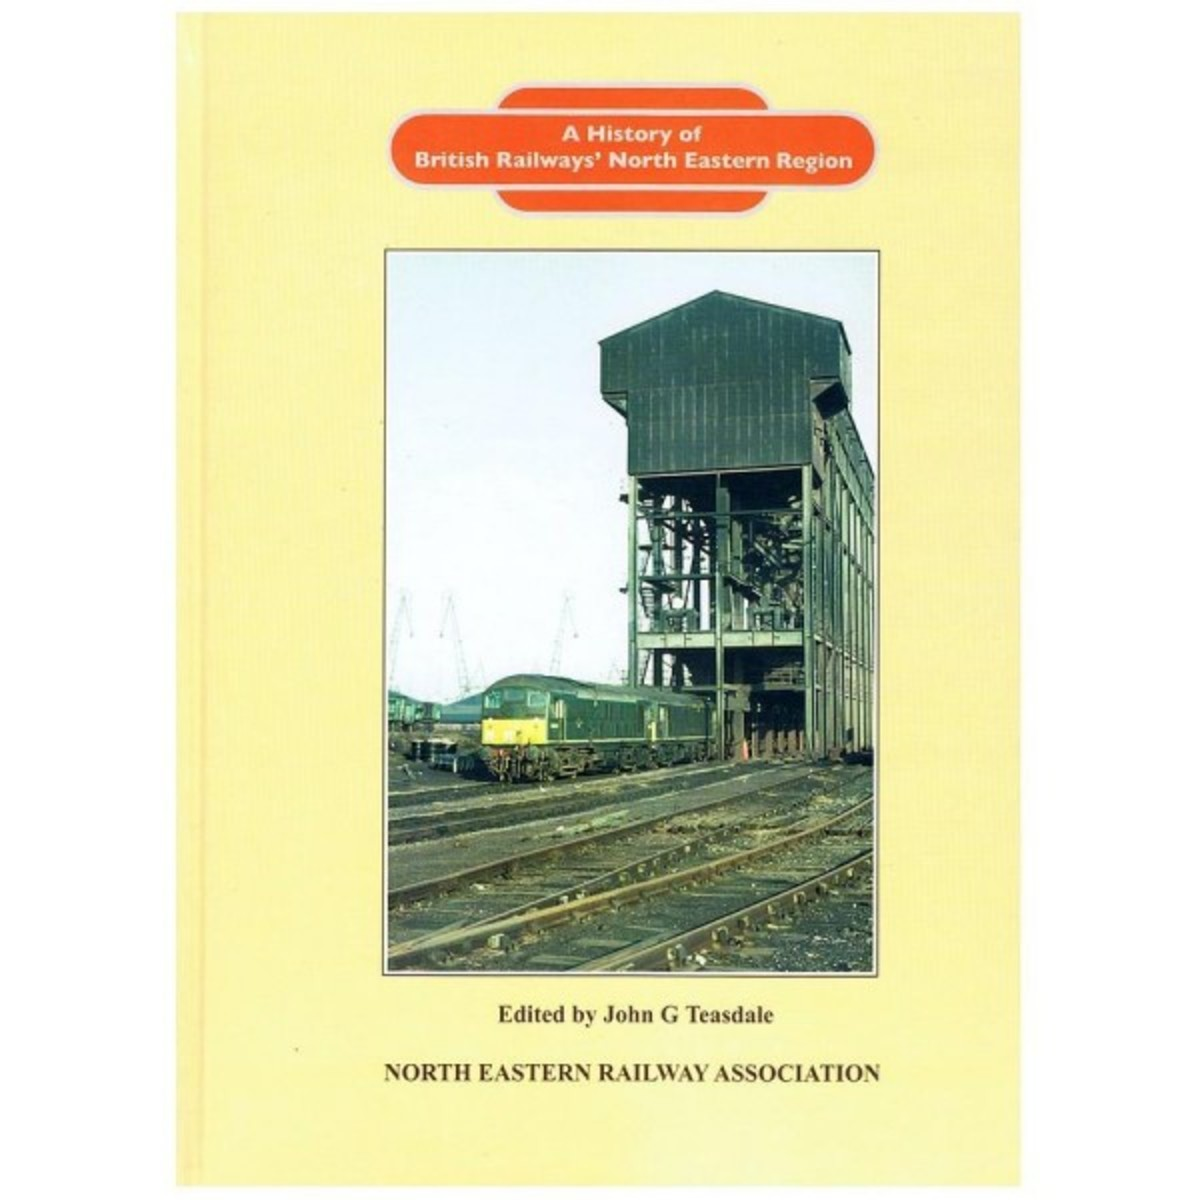 'A History of British Railways' North Eastern Region', ed. John Teasdale with expertly researched and written contributions from several members of the NERA